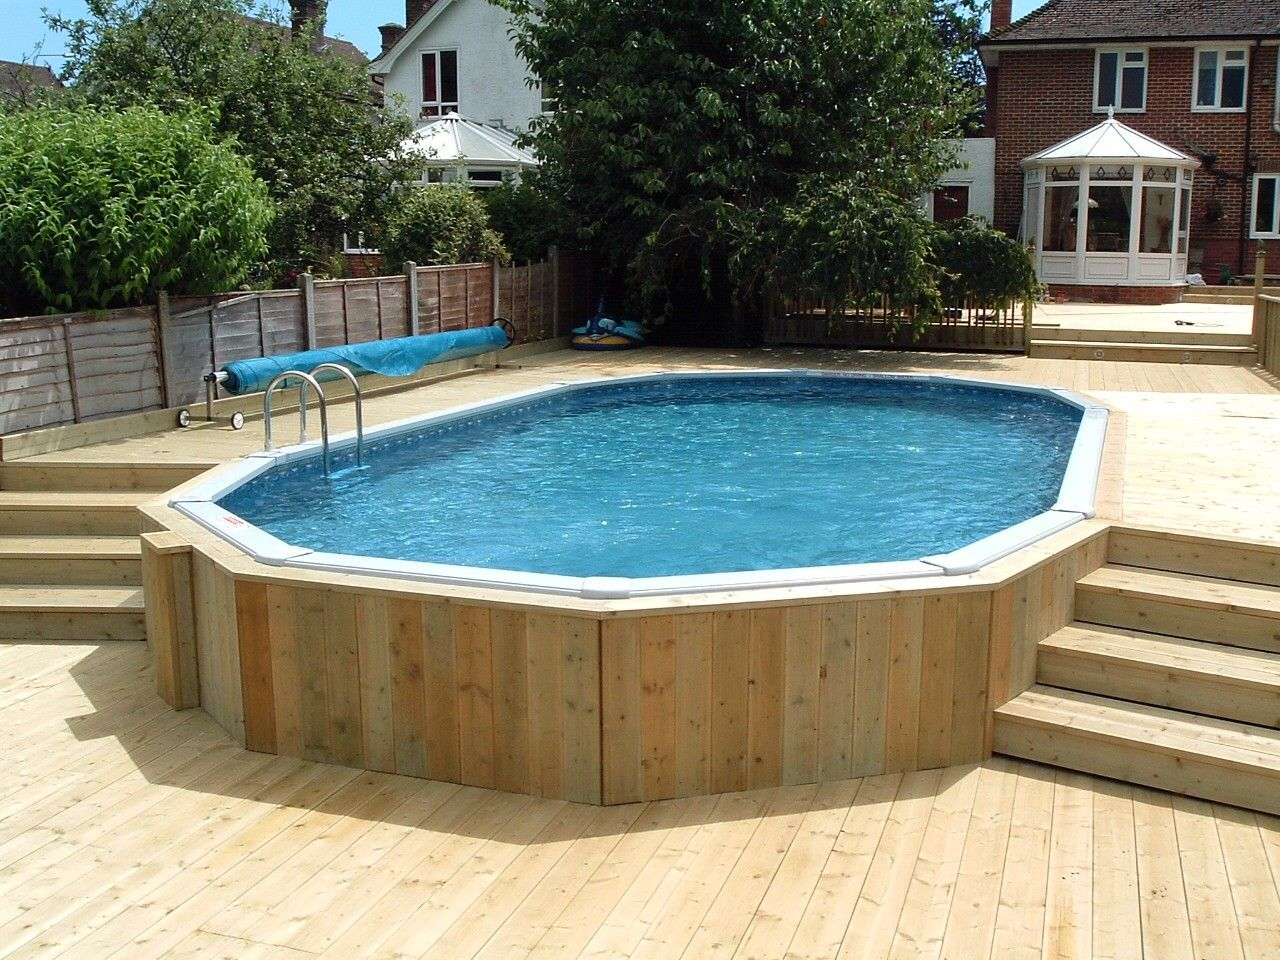 Pool decks above ground pictures - 30 X 15 Aluminium Above Ground Pool With Decking Surround